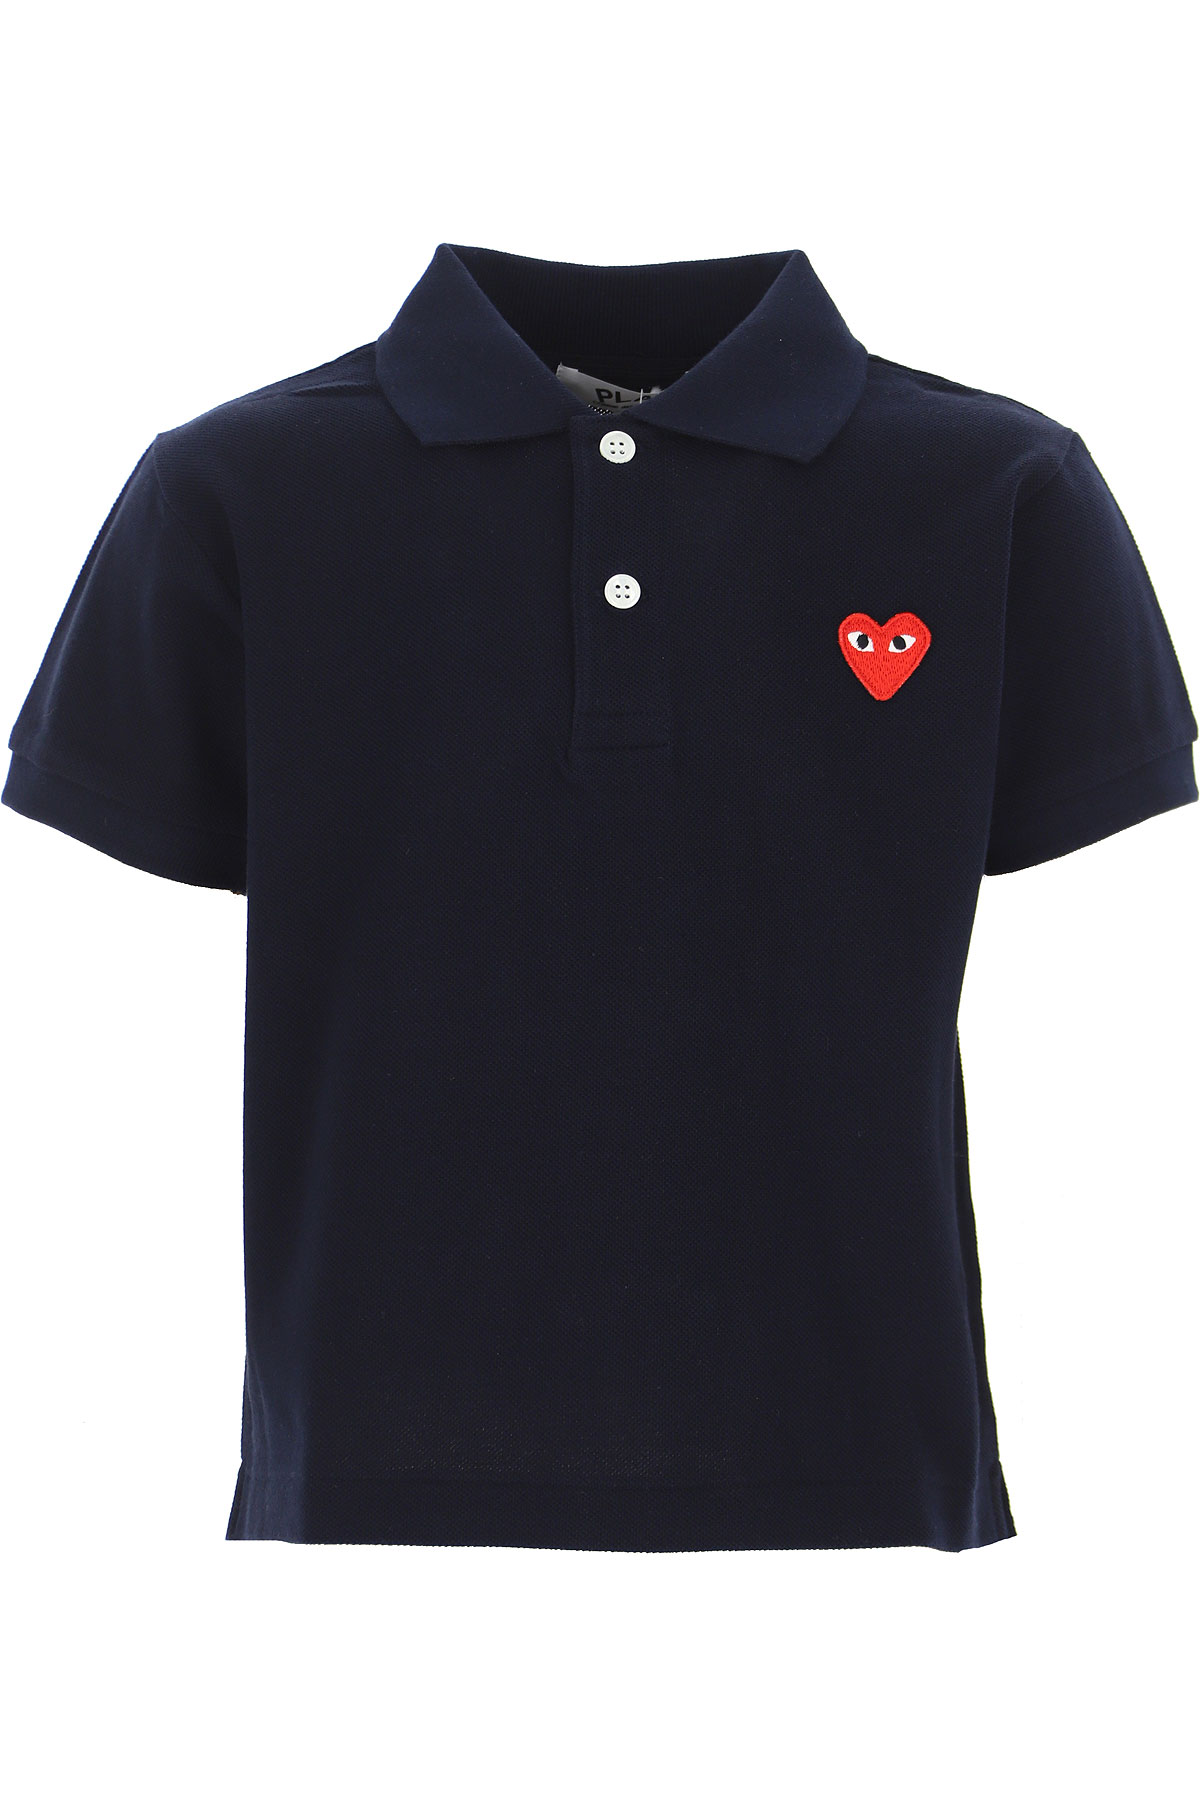 Comme des Garcons Kids Polo Shirt for Boys On Sale, Blue, Cotton, 2019, 2Y 4Y 6Y